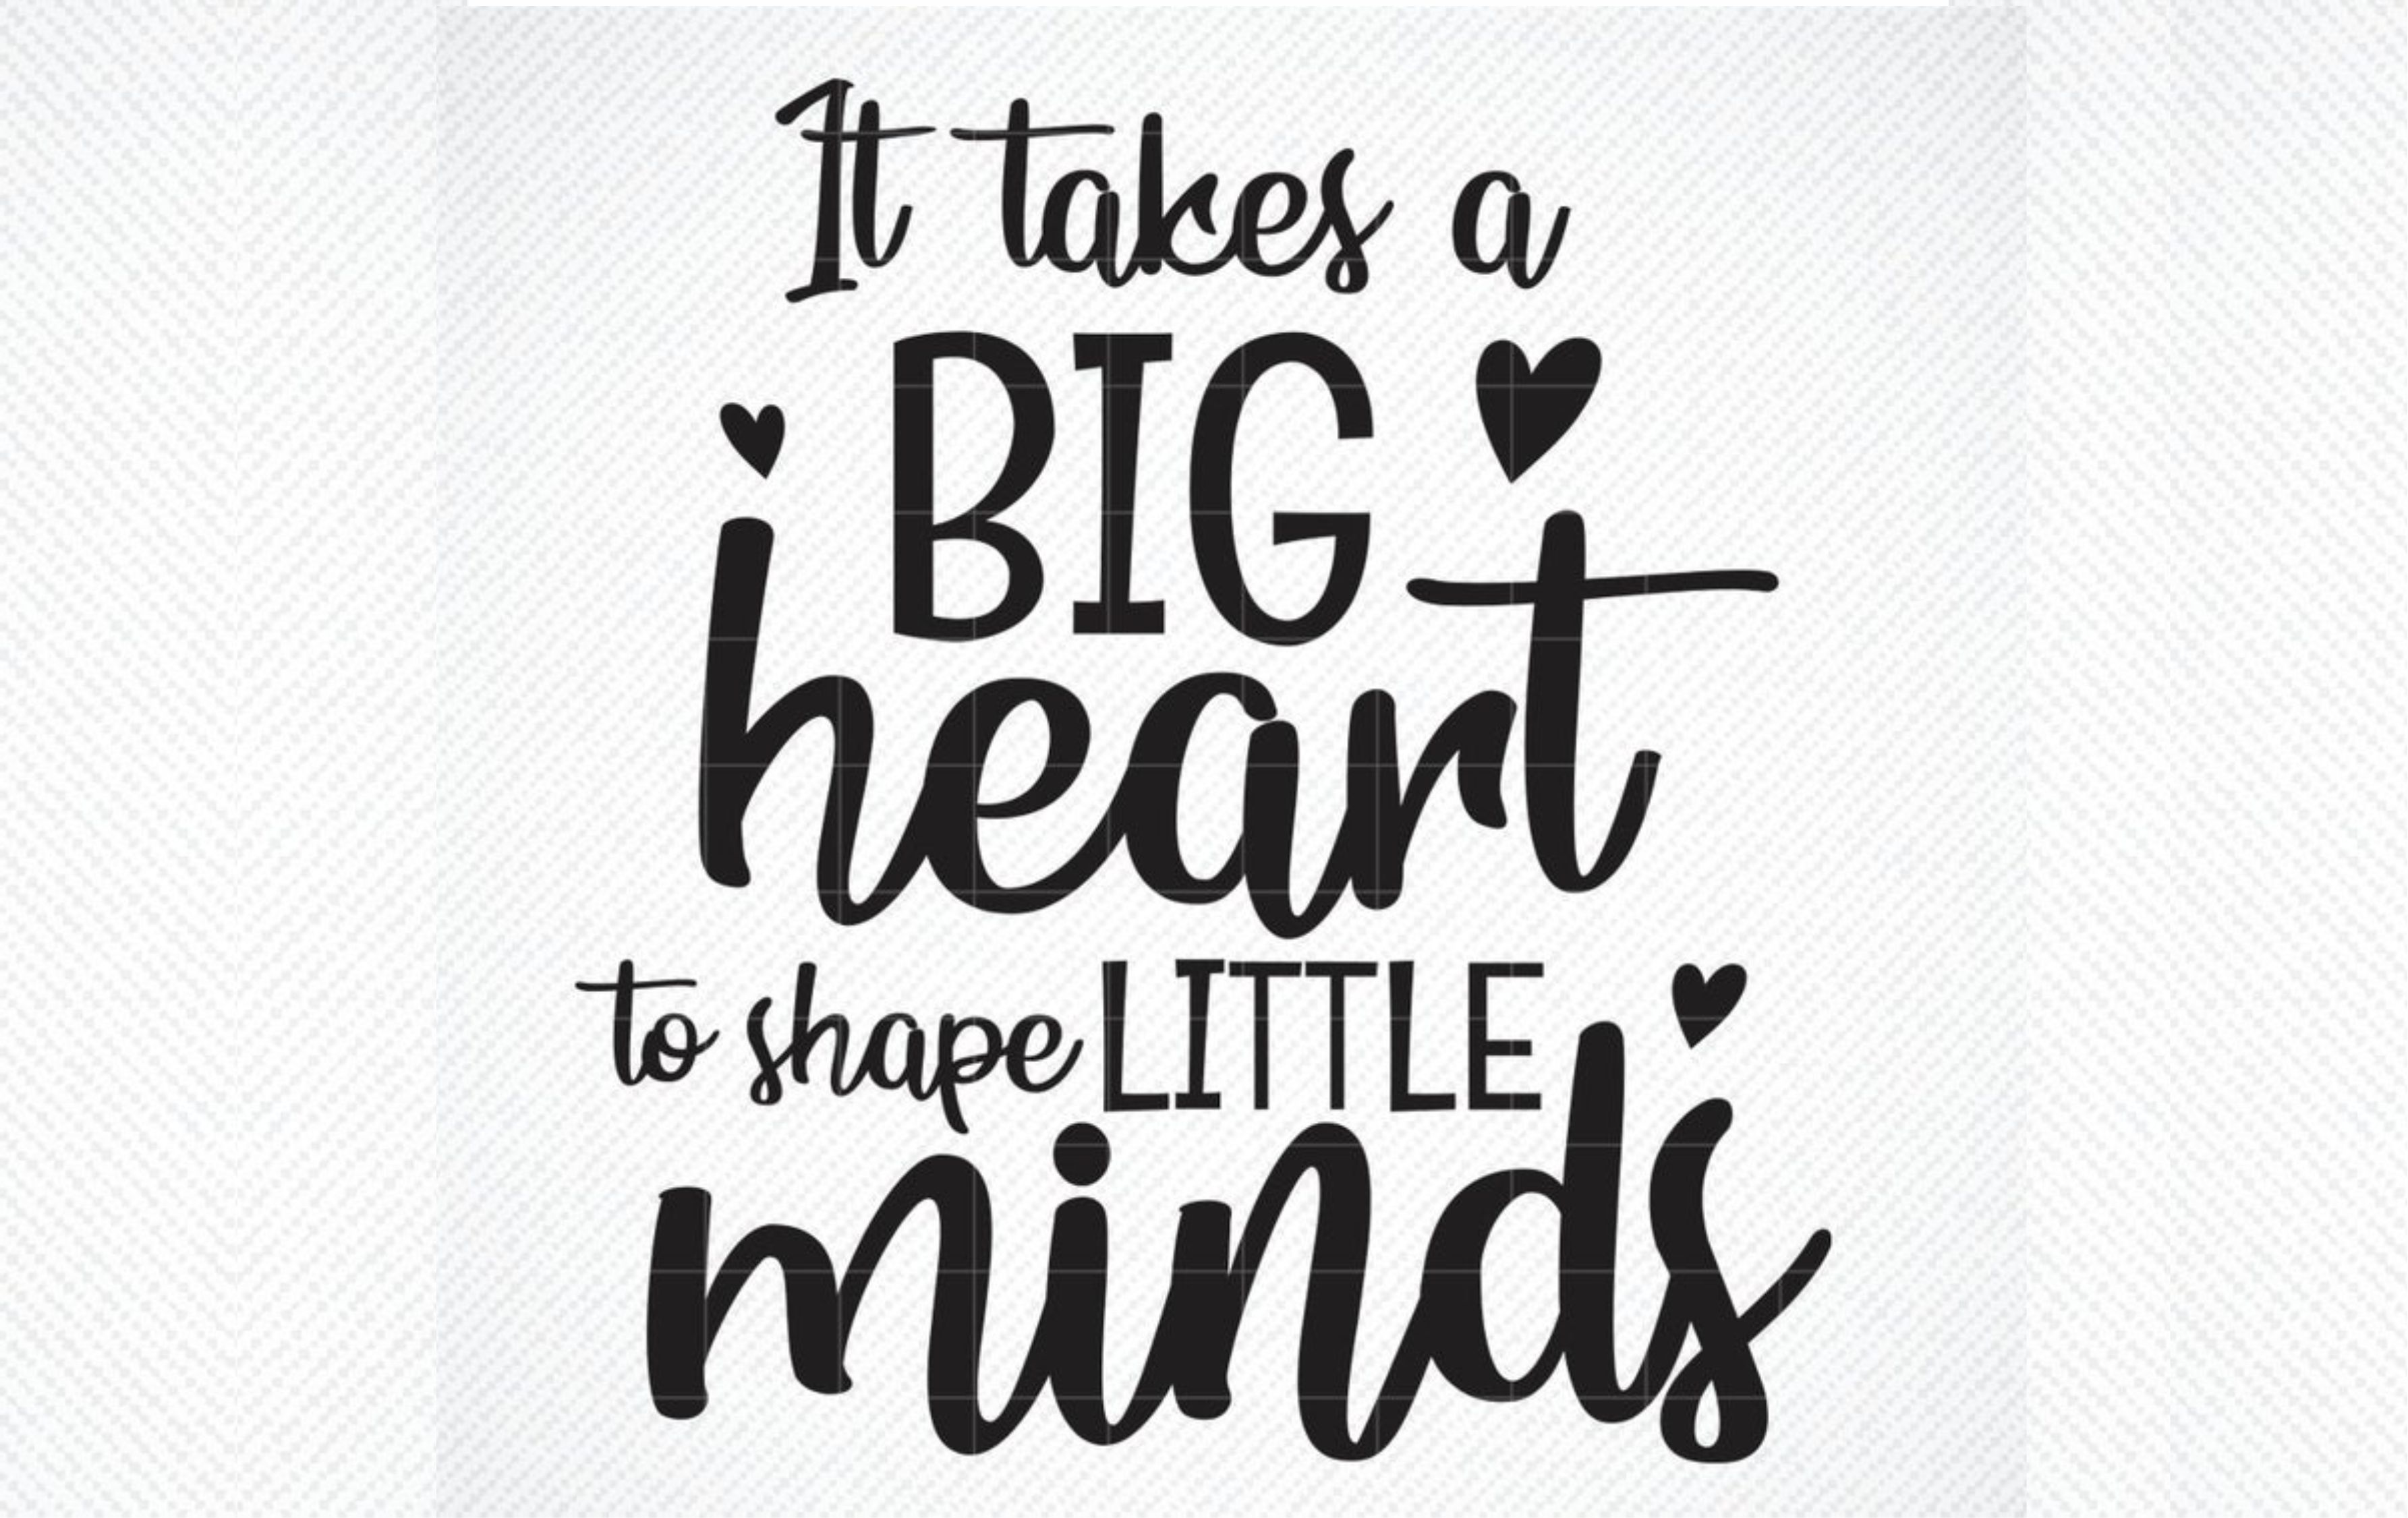 Download Free It Takes A Big Heart To Shape Little Minds Graphic By Svg Den for Cricut Explore, Silhouette and other cutting machines.